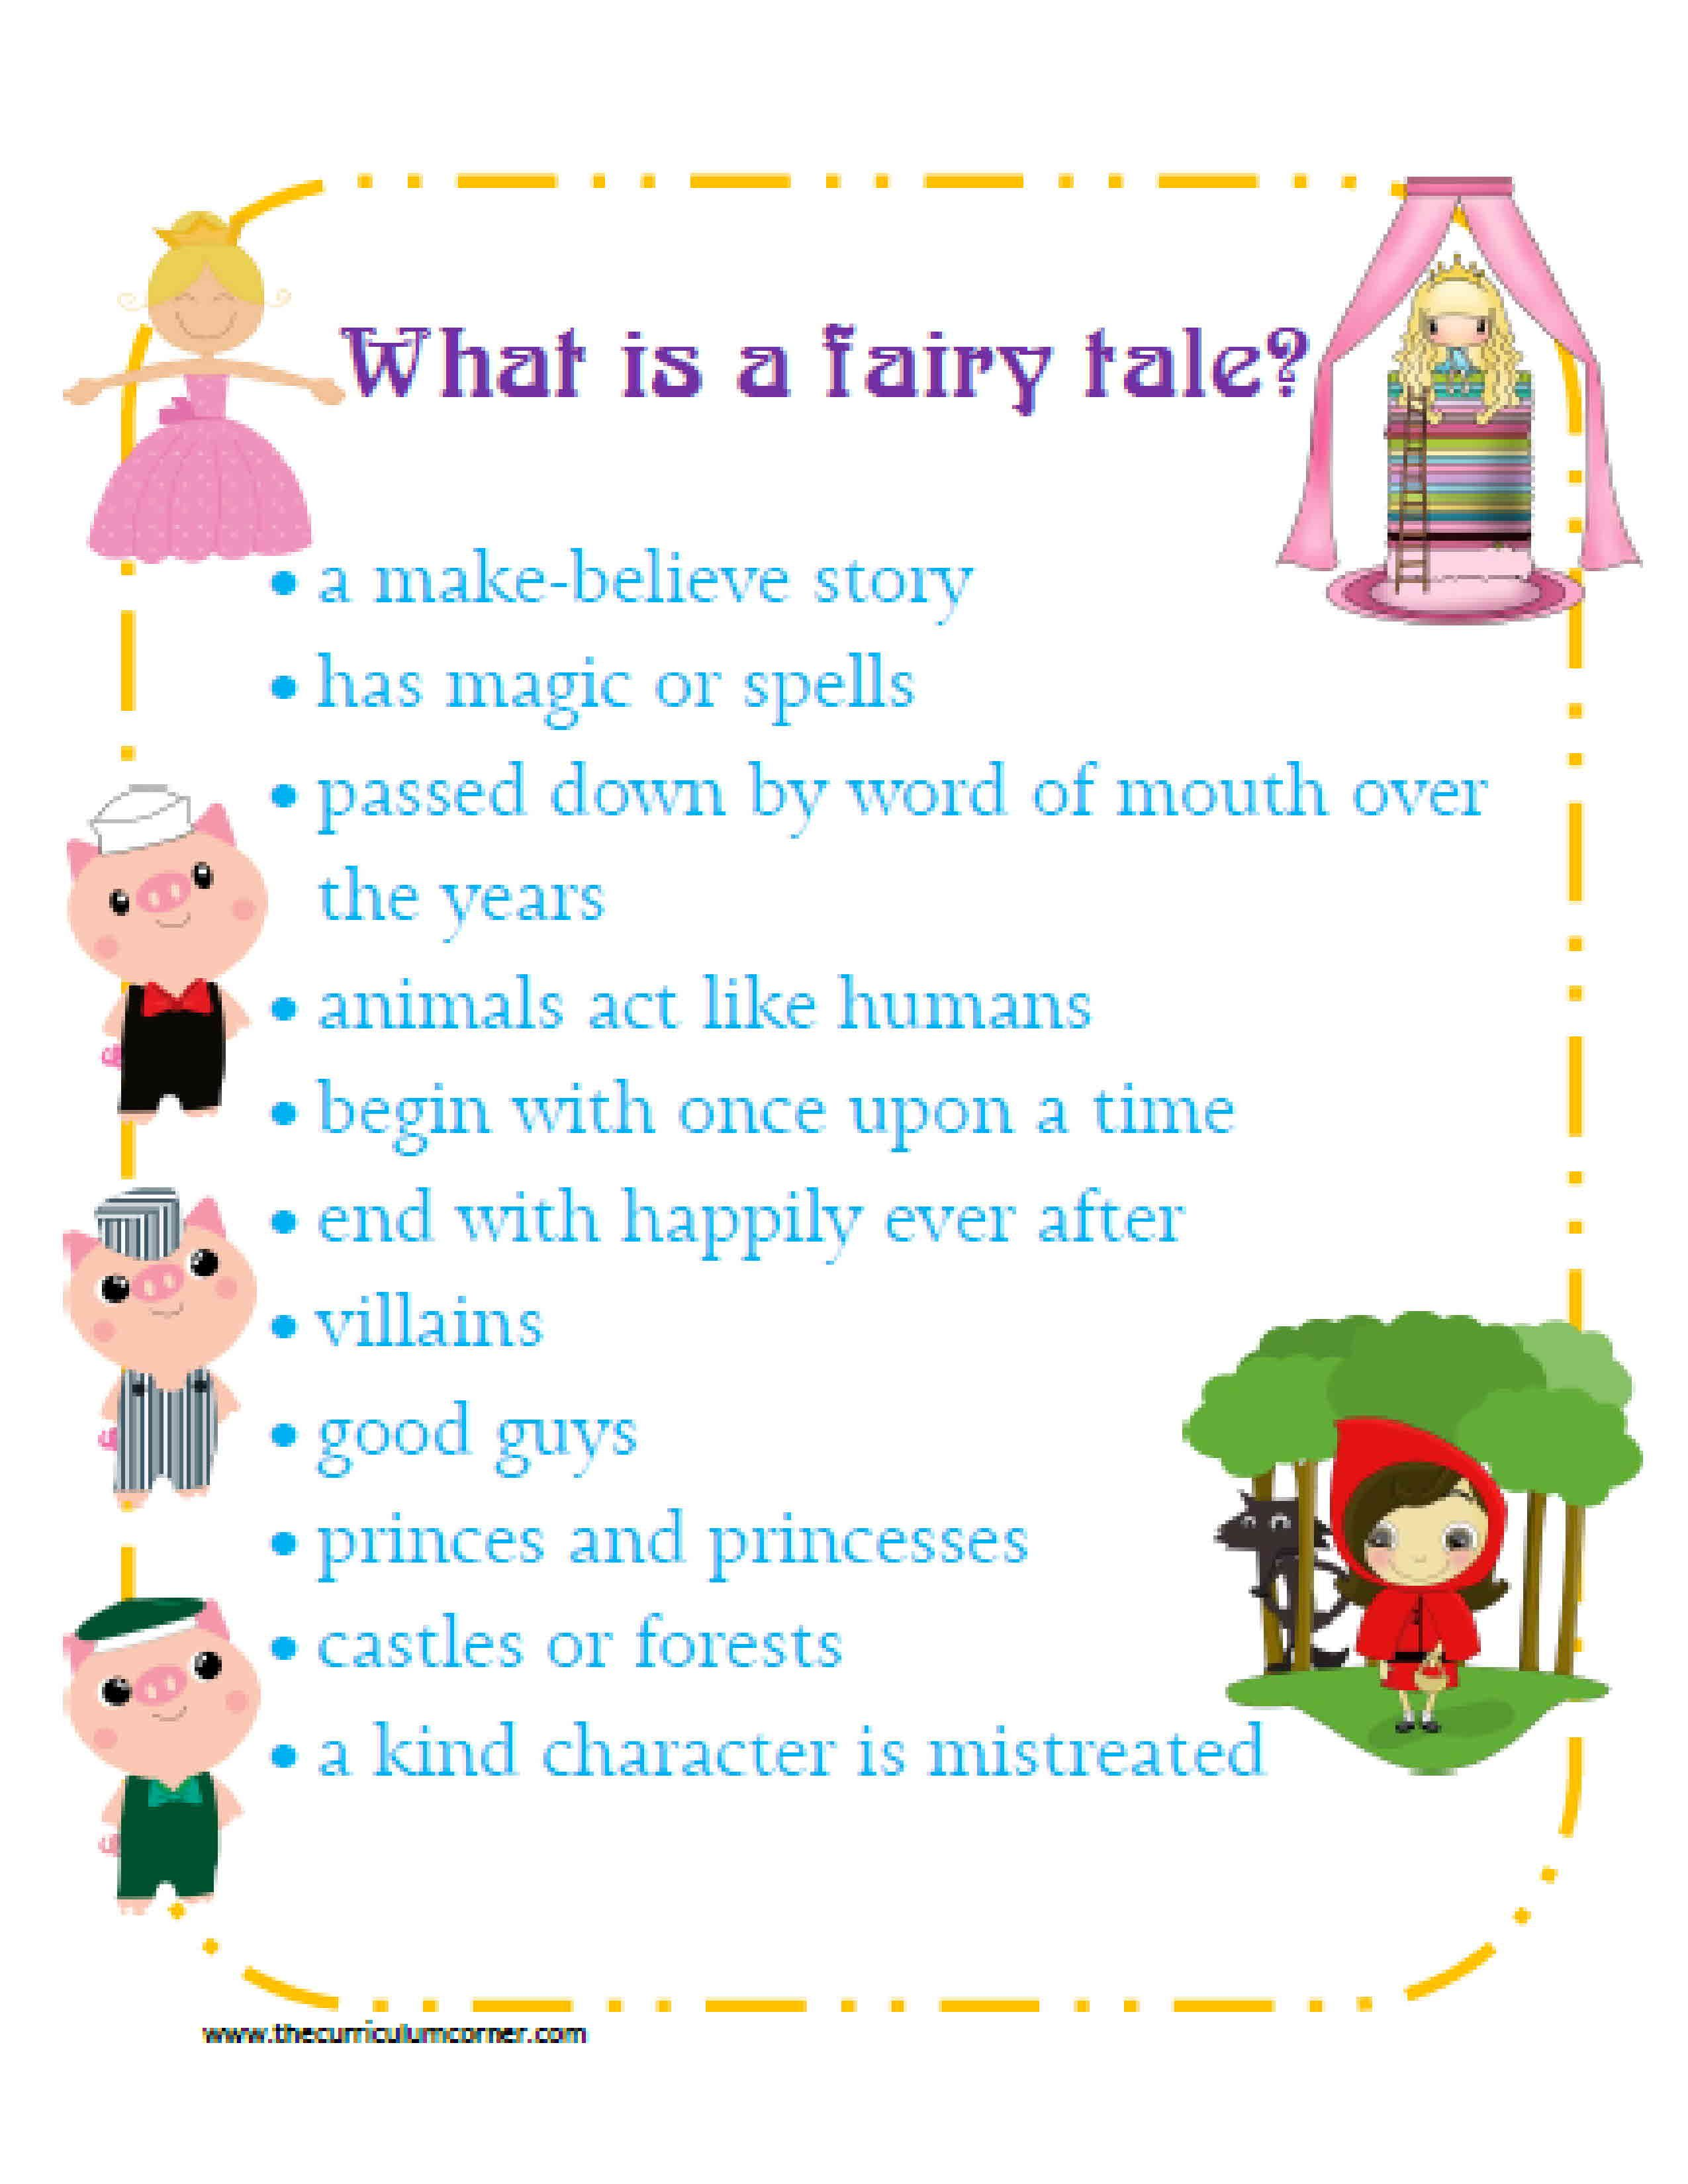 fairy tales unit on pinterest fairy tale activities fractured fairy tales and three little pigs. Black Bedroom Furniture Sets. Home Design Ideas